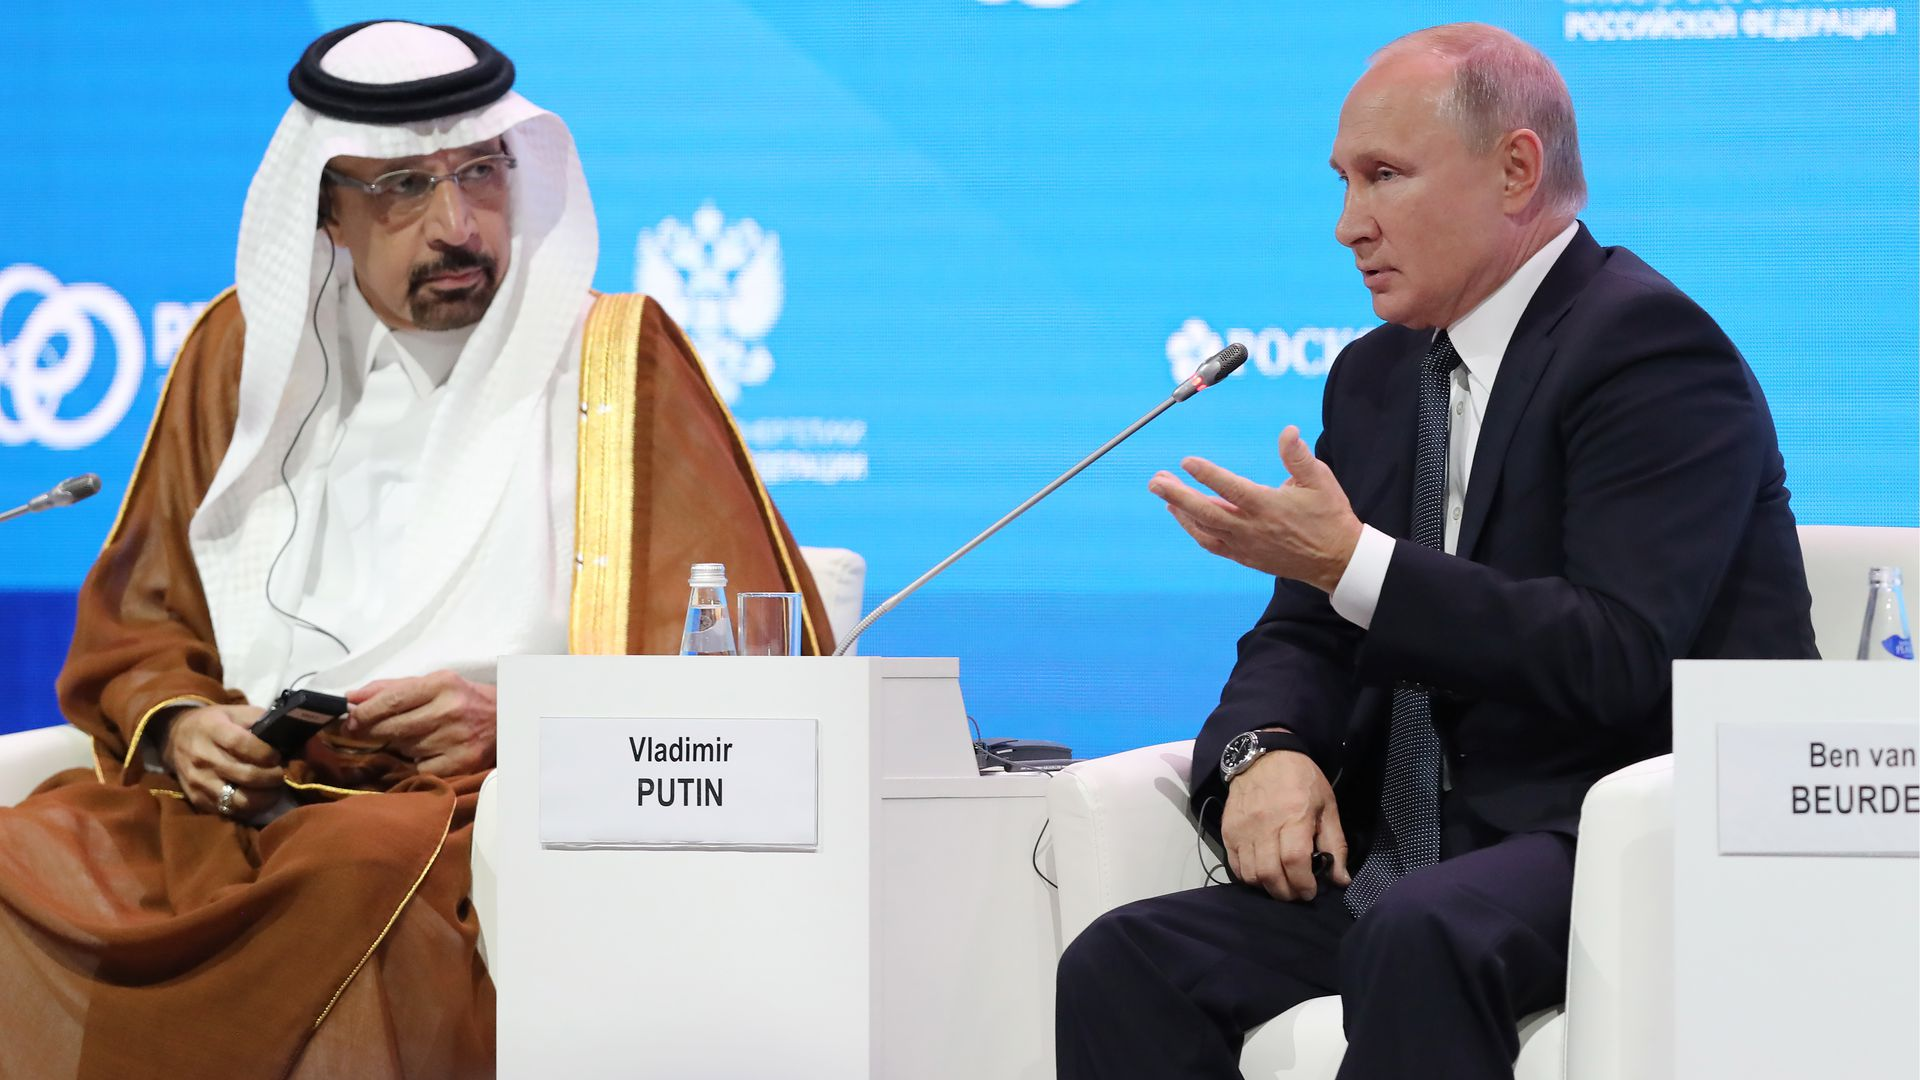 Khalid A. Al-Falih and Vladimir Putin seated onstage at a conference